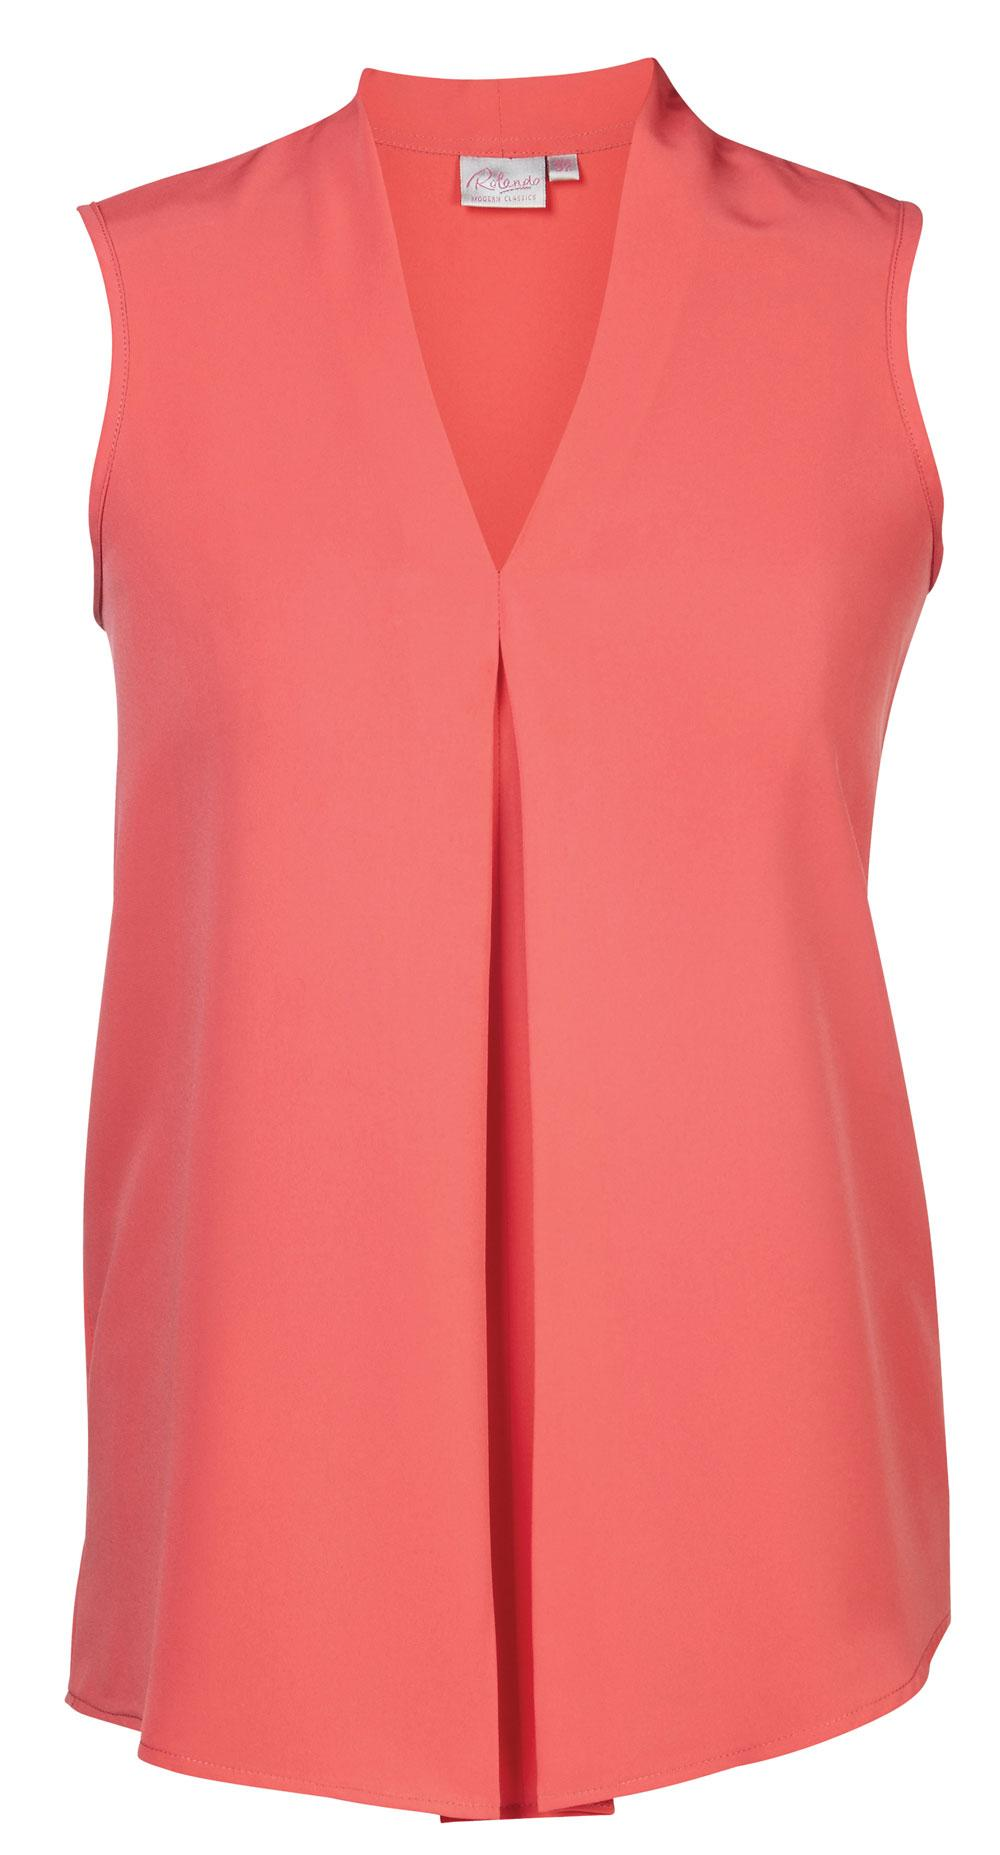 Lyra K225 S/less Blouse - Coral